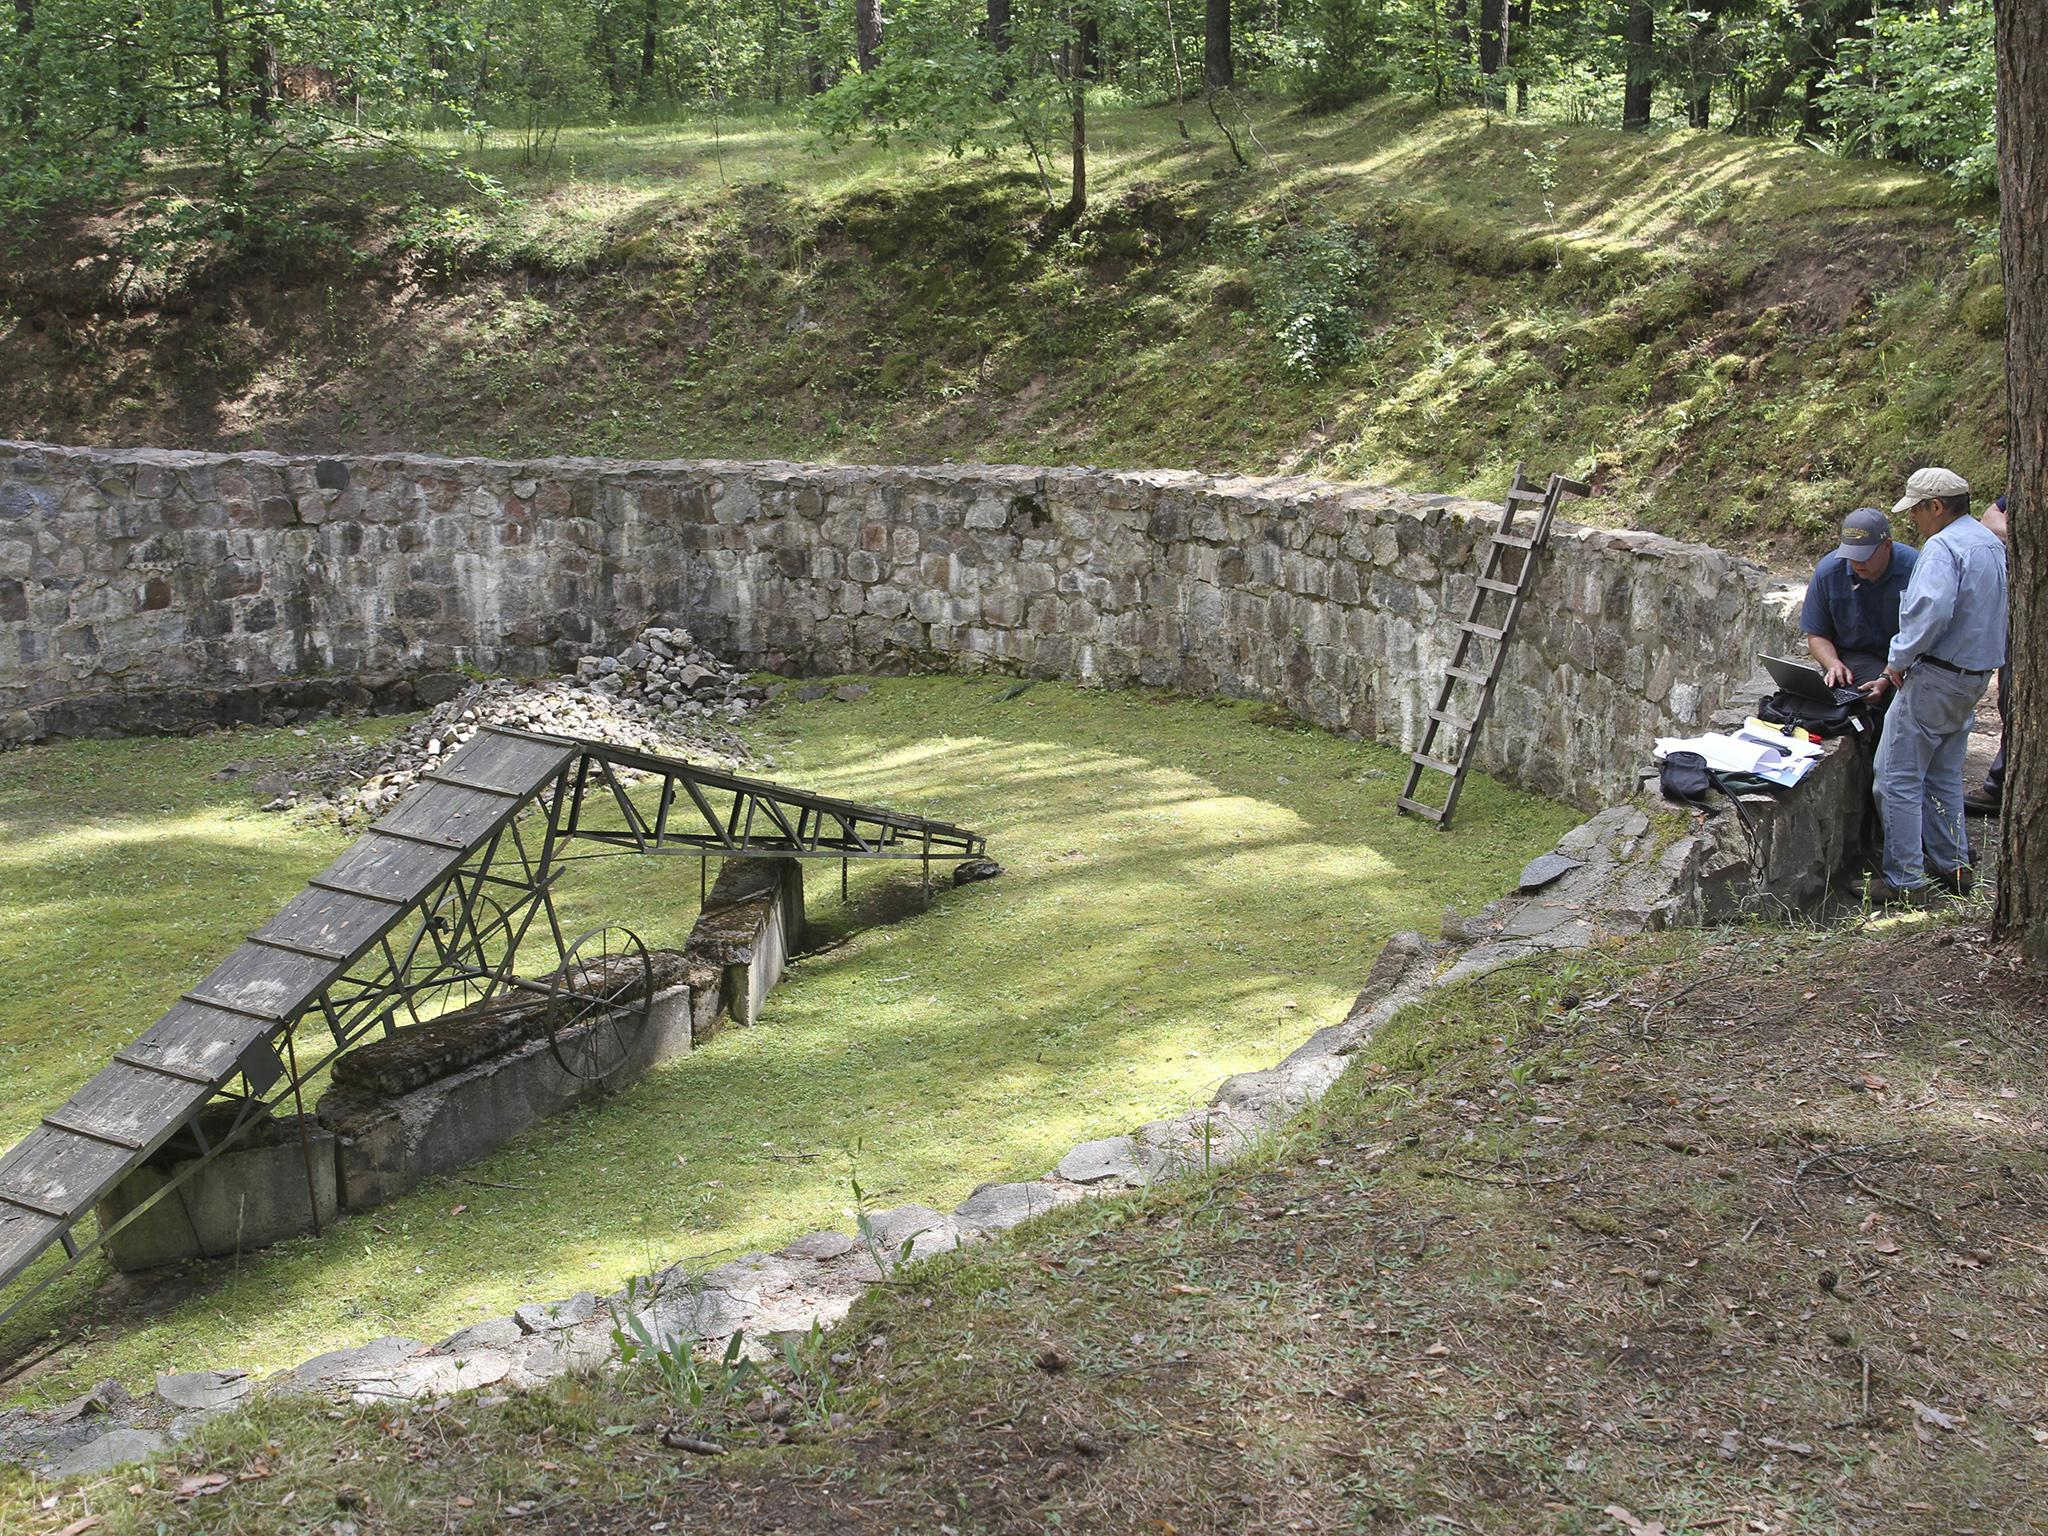 Secret tunnel hand-dug by Jews to escape Nazi captors